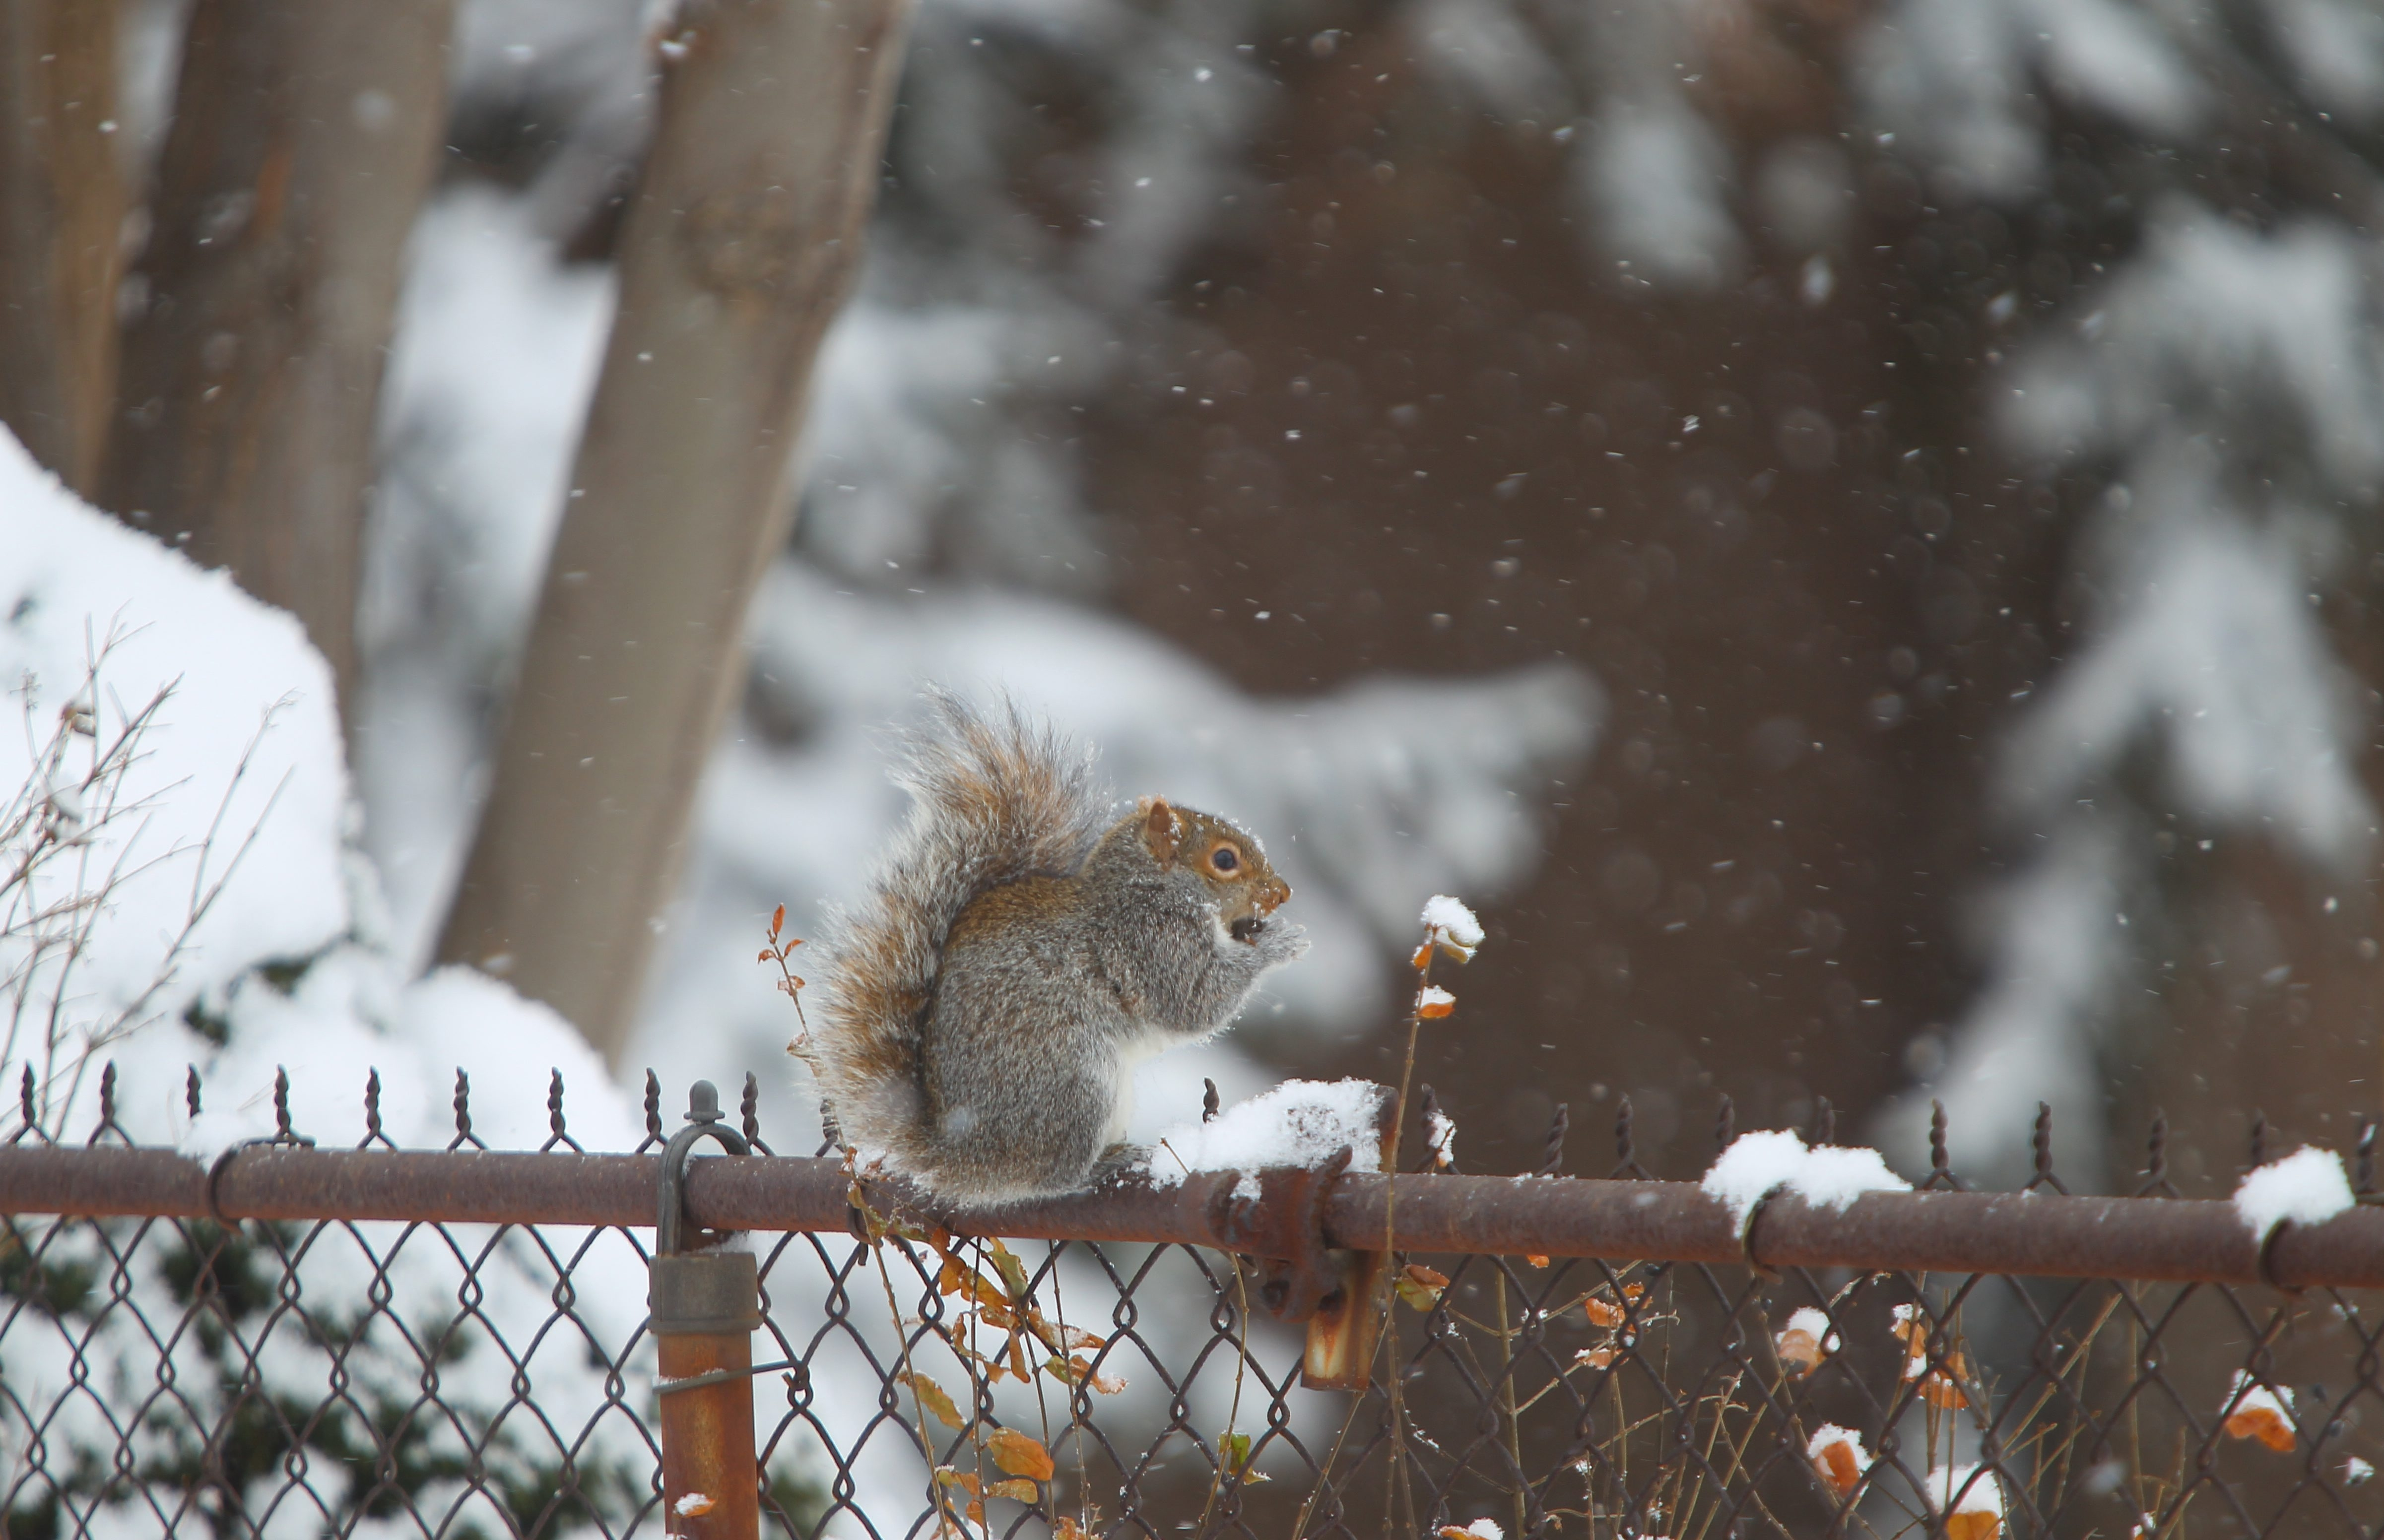 A squirrel enjoys a nut while sitting on the fence as snow falls on Friday.